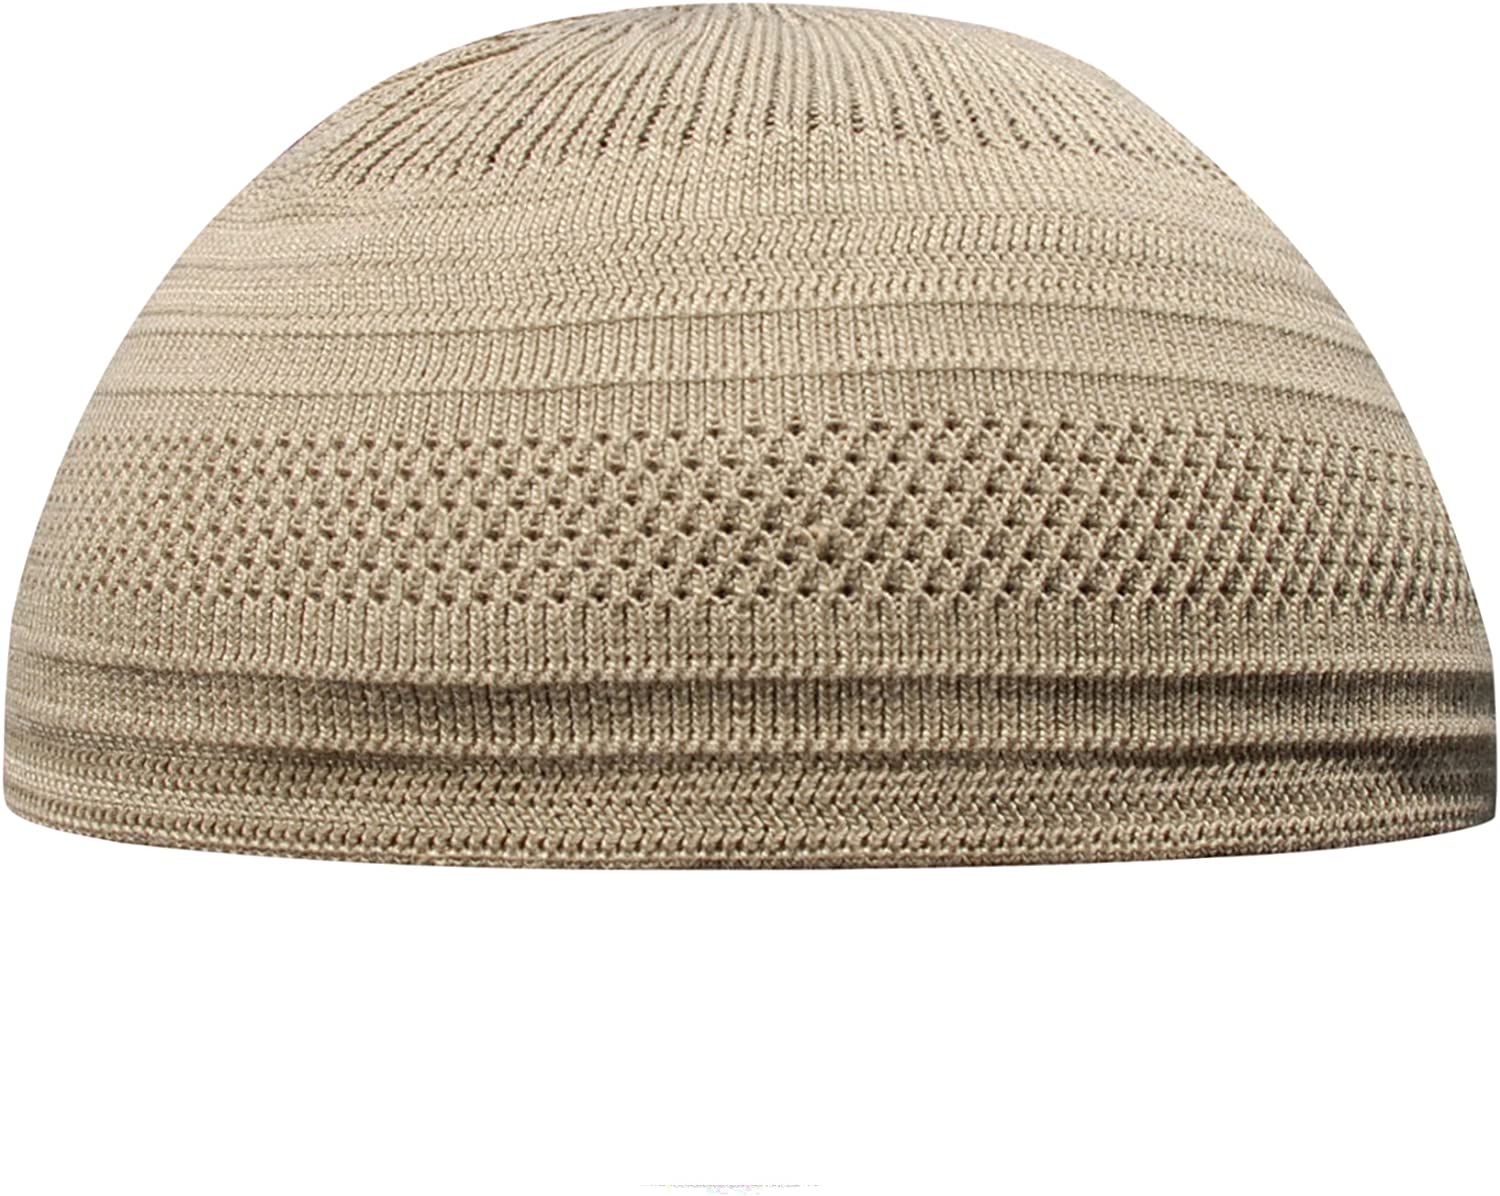 Silver Grey Cotton safety Stretch Knit Kufi Hat - National uniform free shipping Skull Cap Comfortable